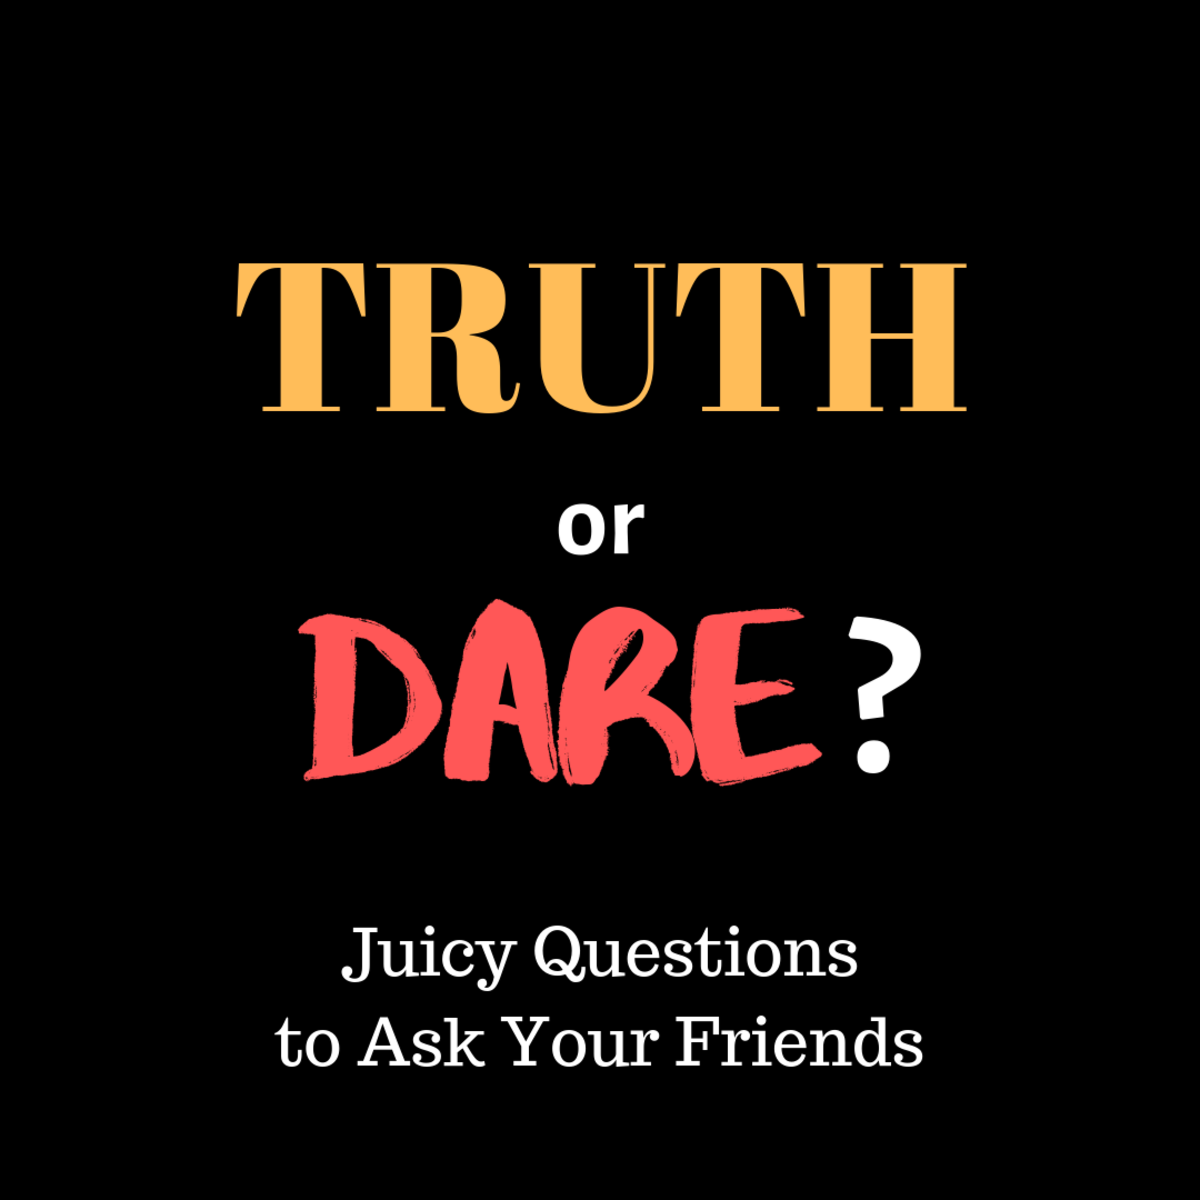 Get ideas for the best, funniest, juiciest and most embarrassing questions to ask in the game Truth or Dare!